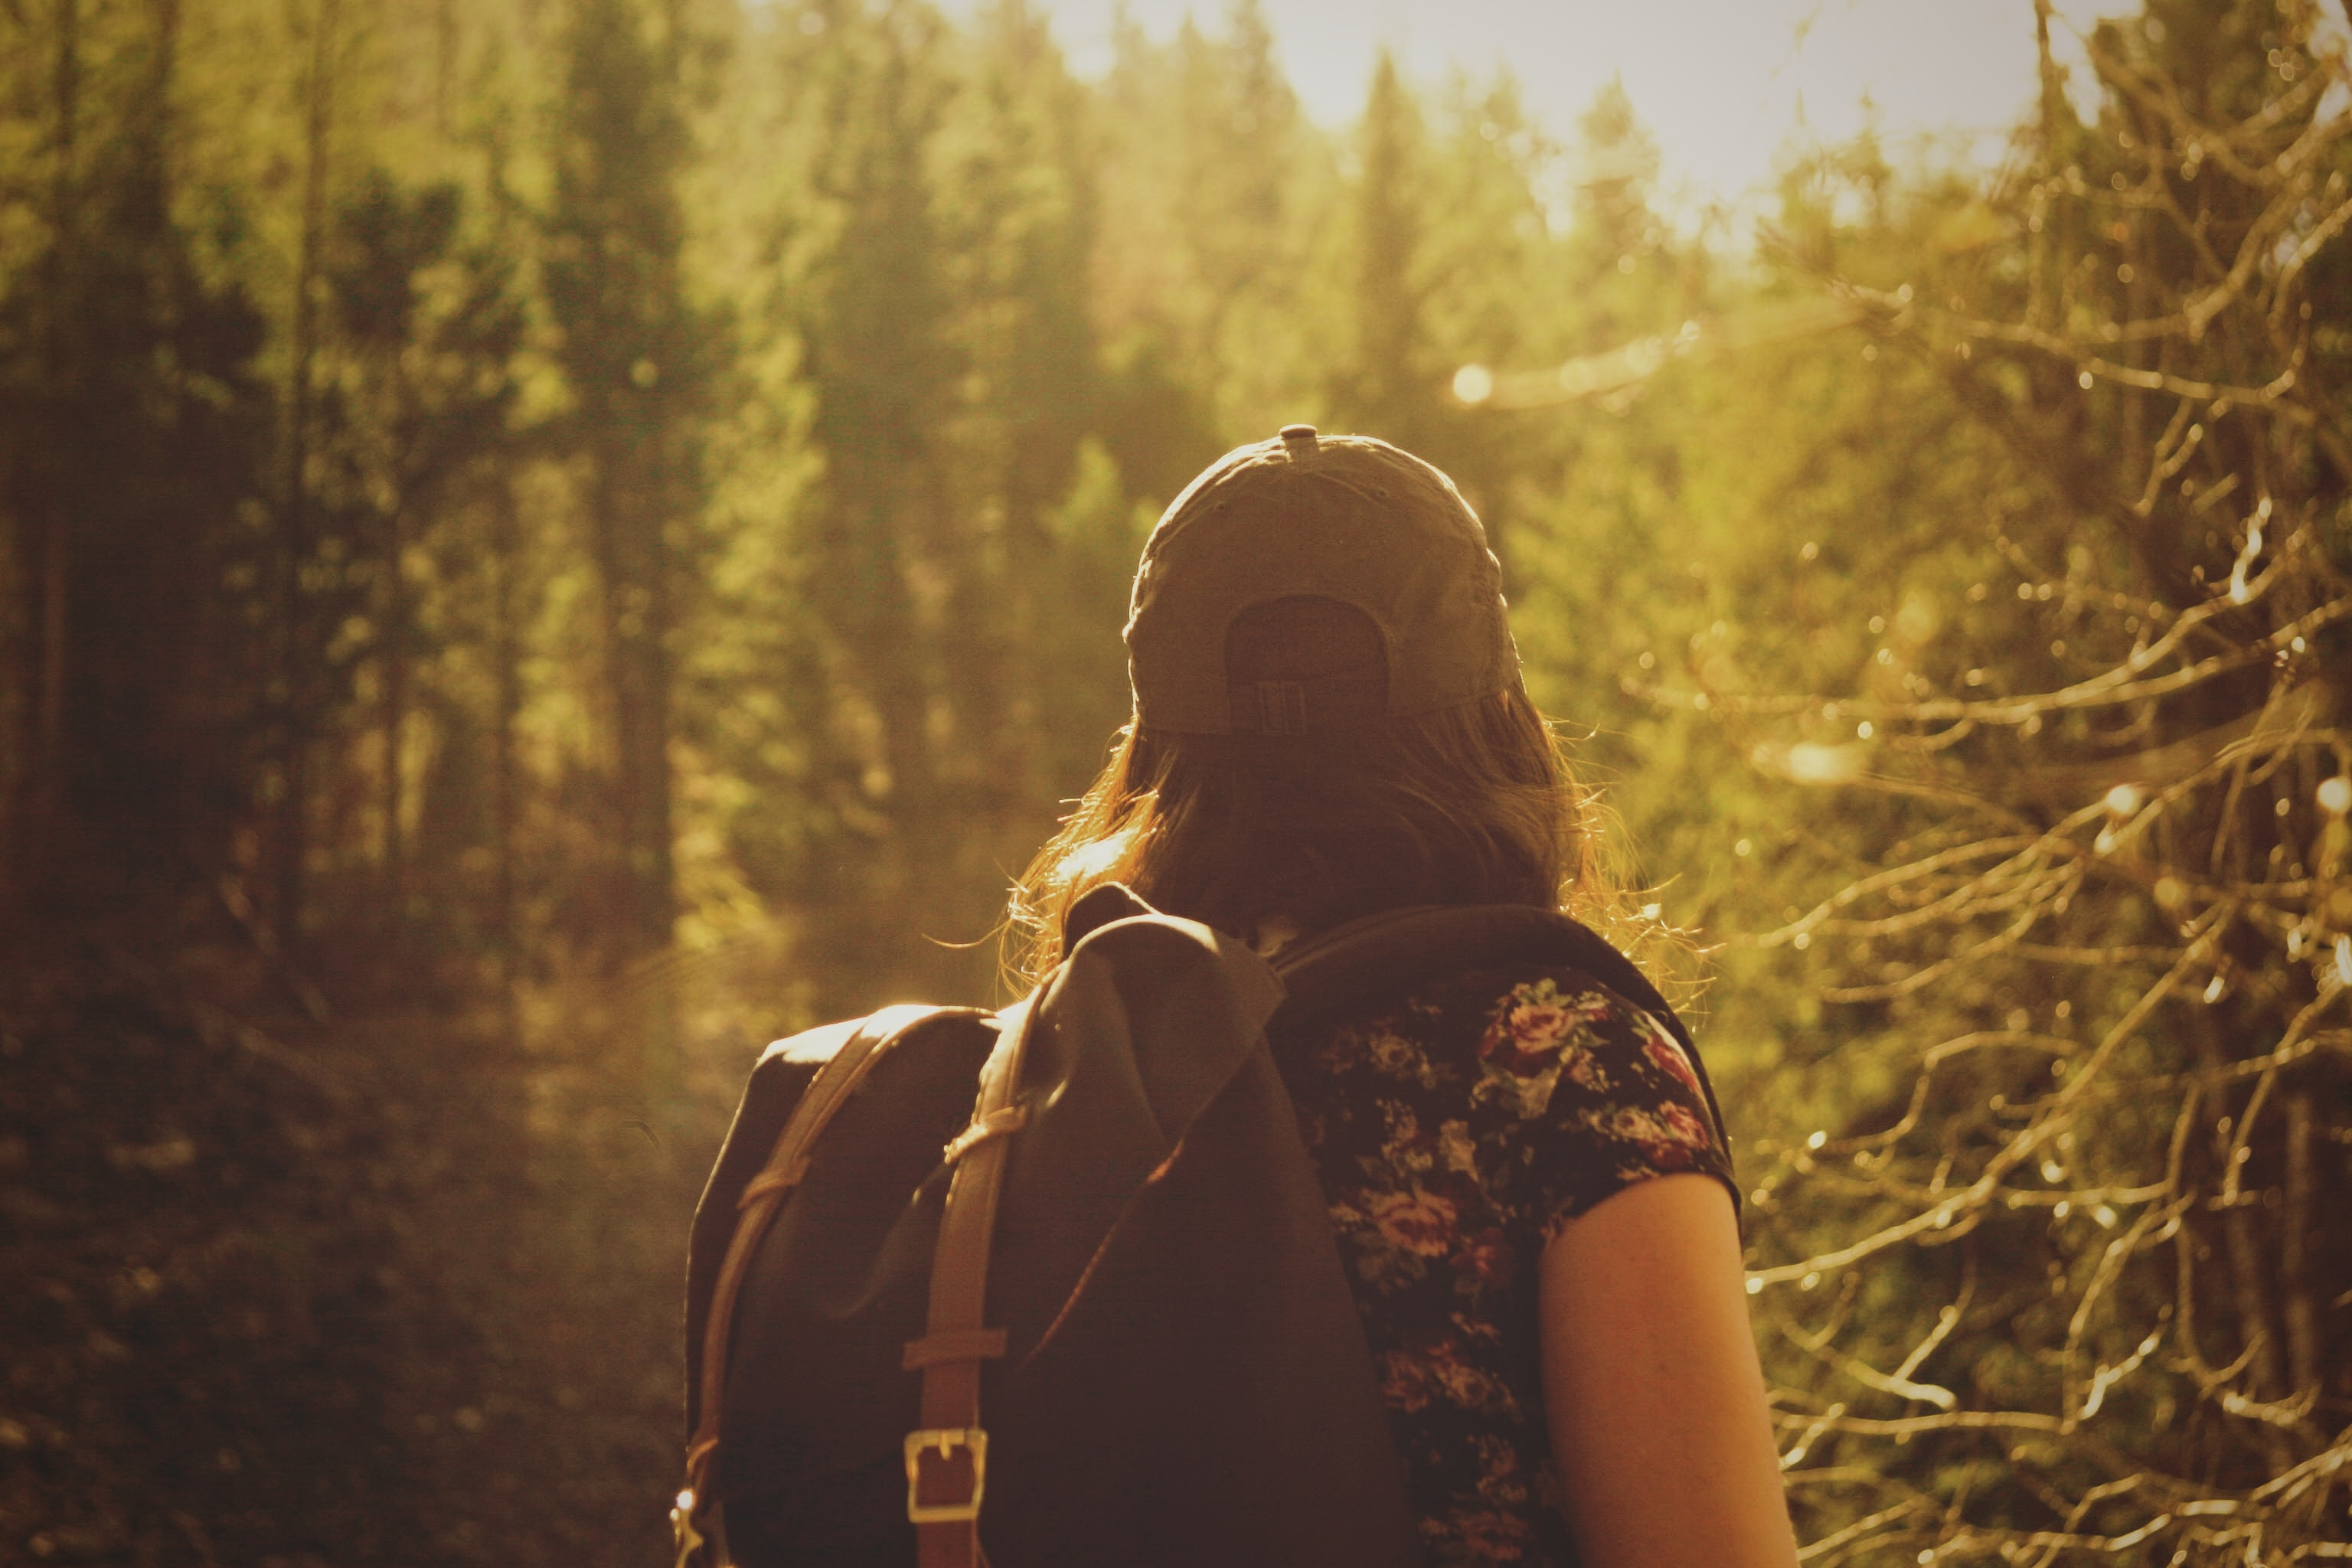 A woman with a backpack looking at a dense forest in front of her